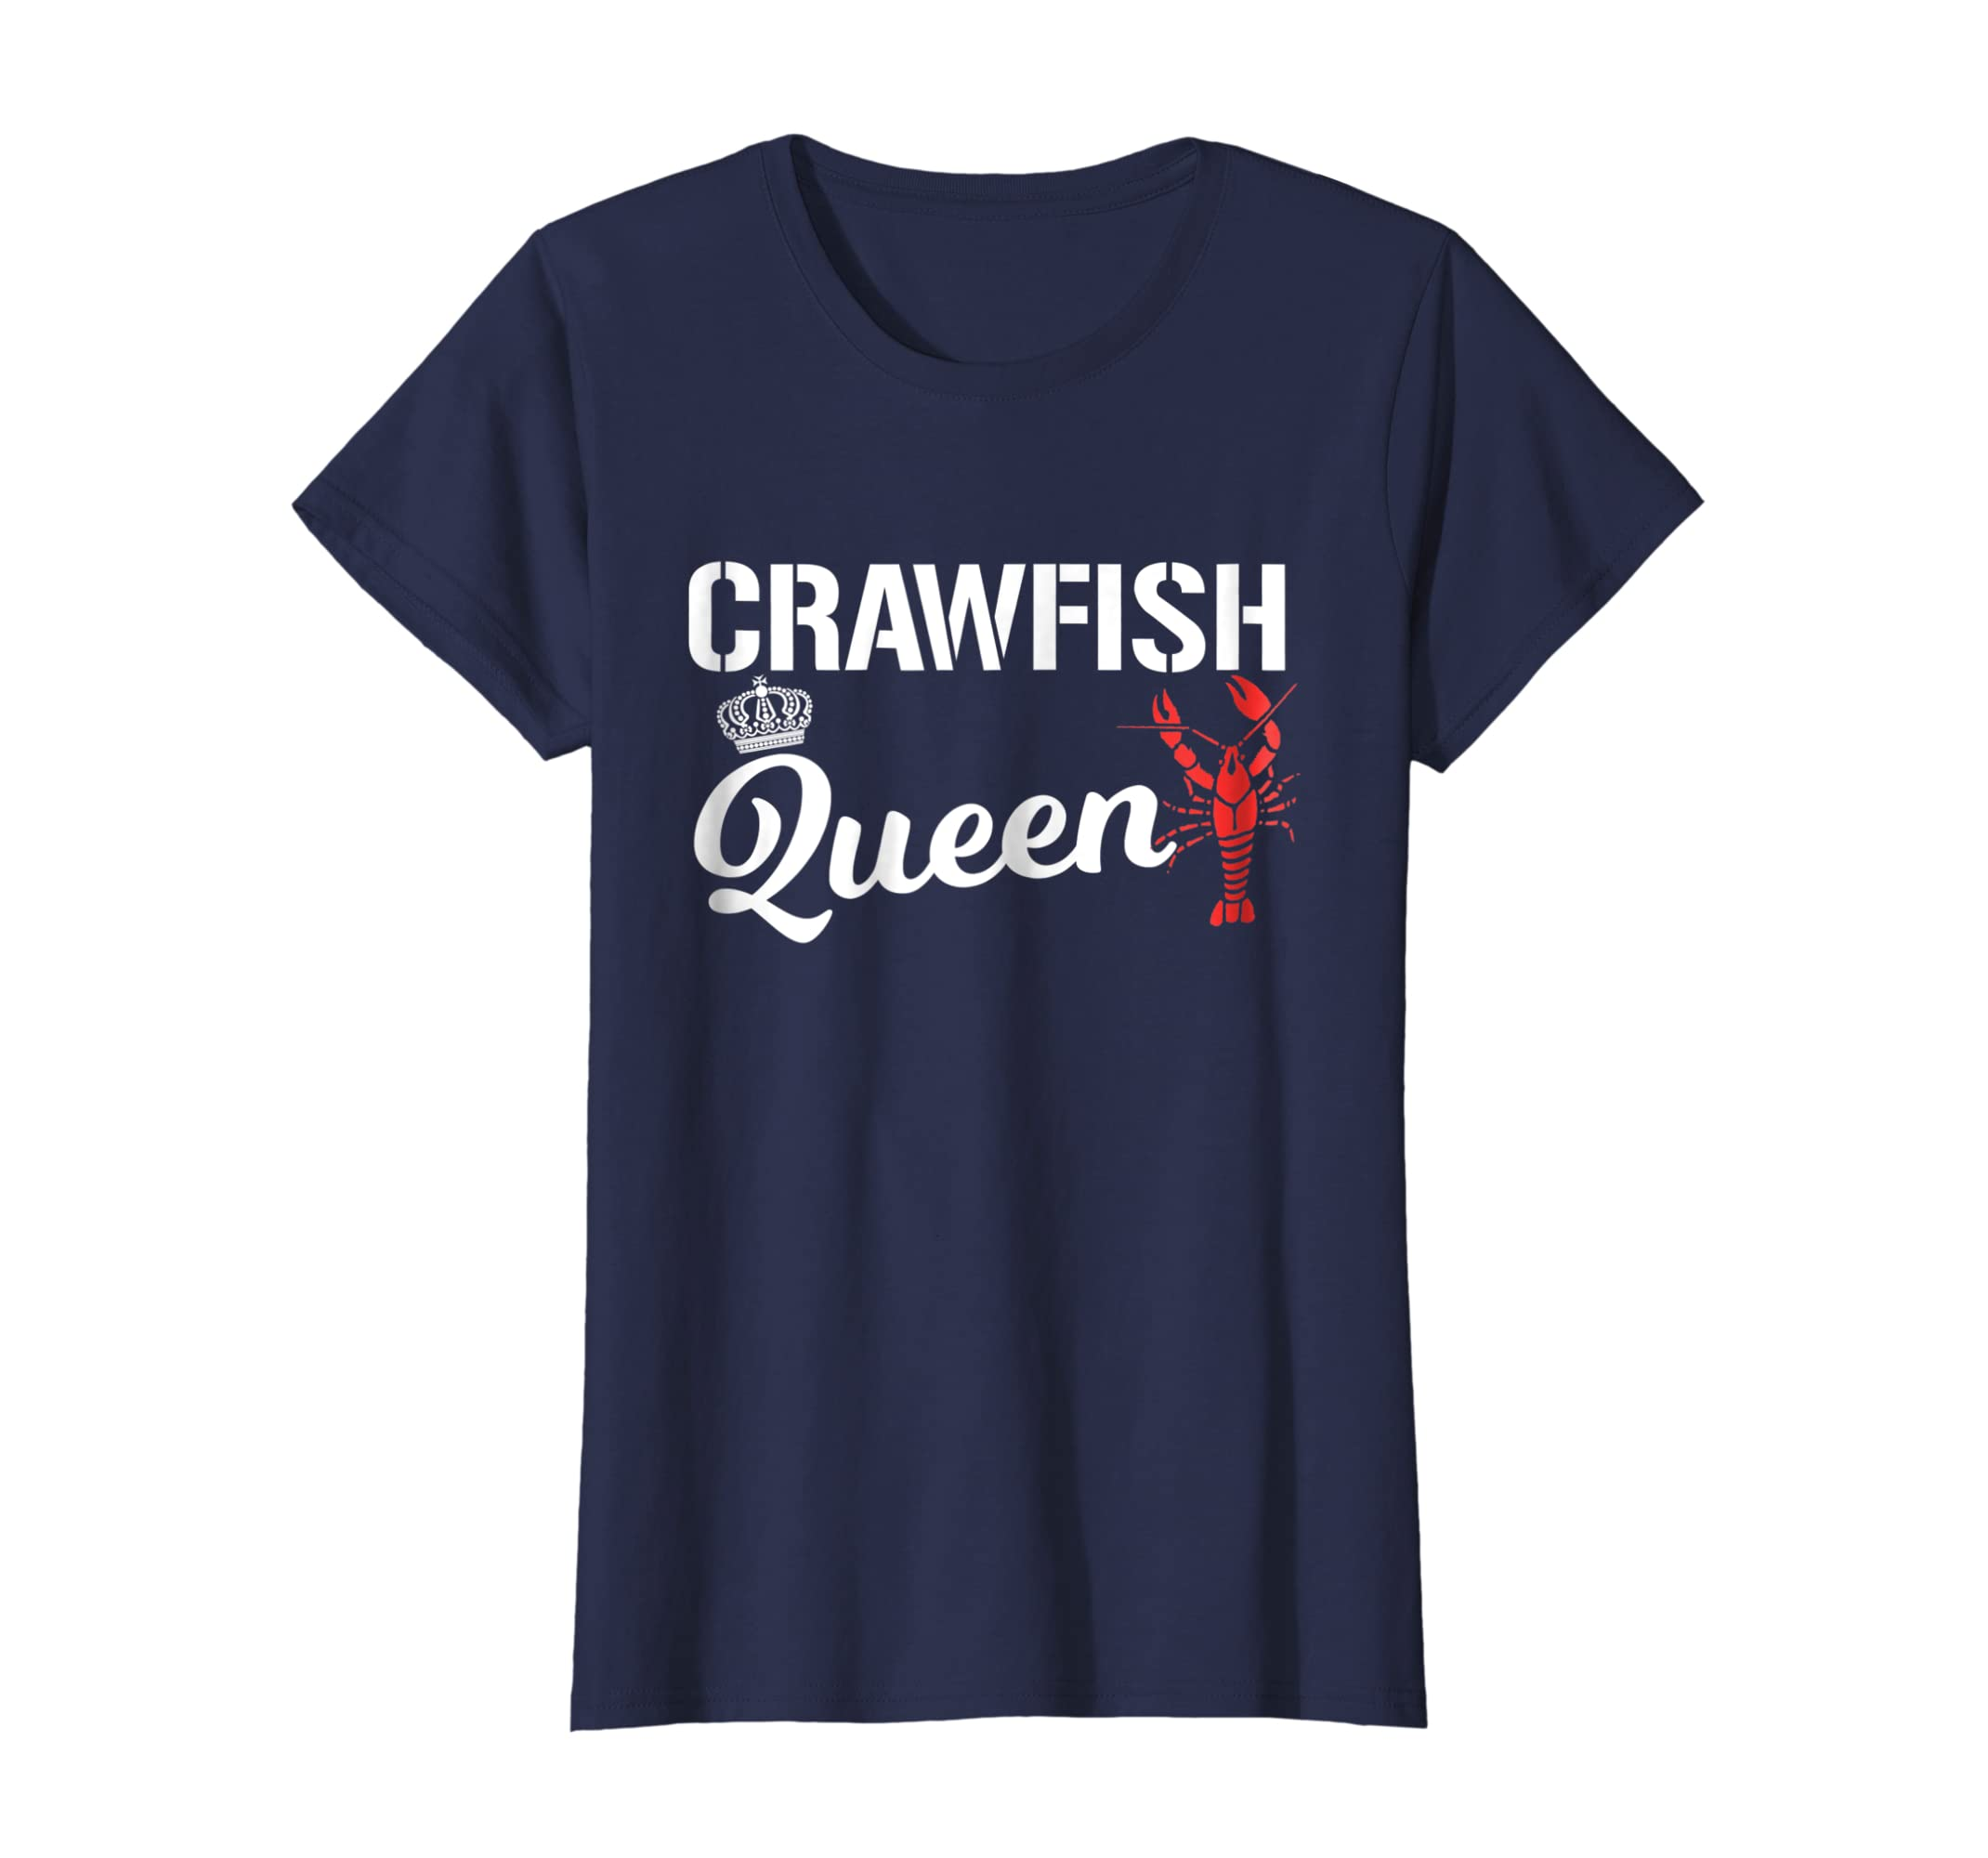 81b5fadc00 Amazon.com: Crawfish T Shirt Crawfish Queen Cajun Boil Funny Gift Shirt:  Clothing